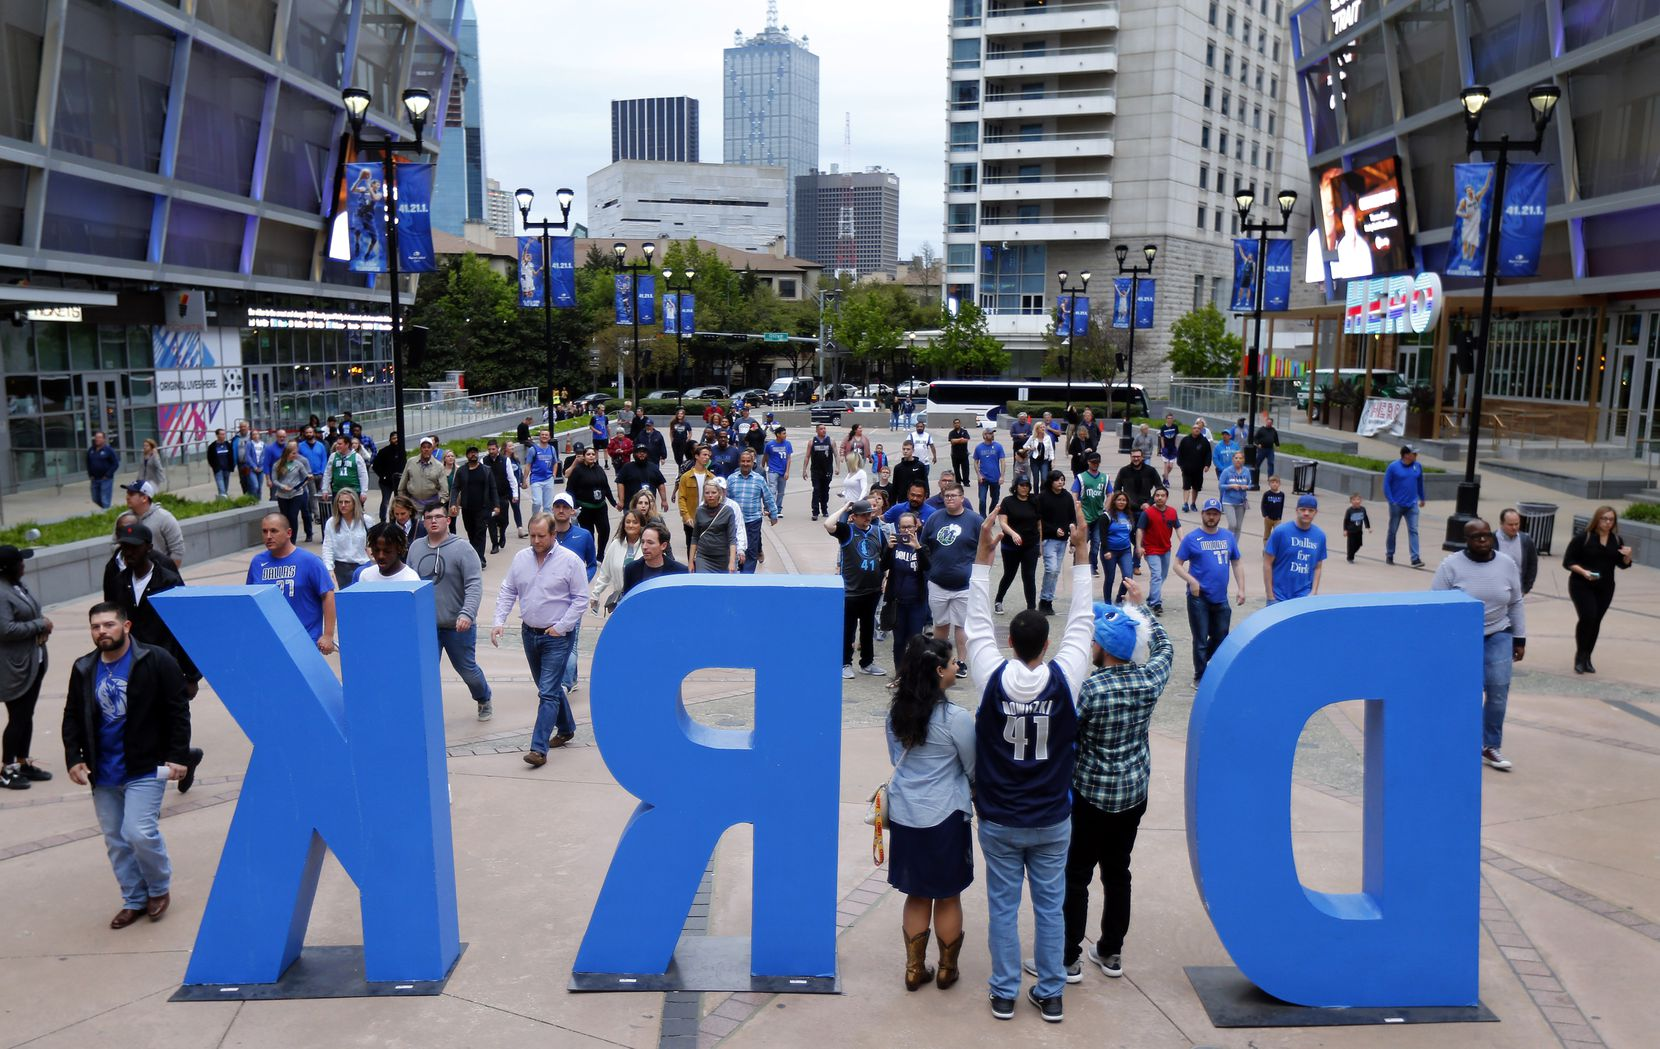 Dallas Mavericks fans pose for photos in the DIRK sign outside American Airlines Center in Dallas on April 3, 2019, before the Mavs played the Minnesota Timberwolves.